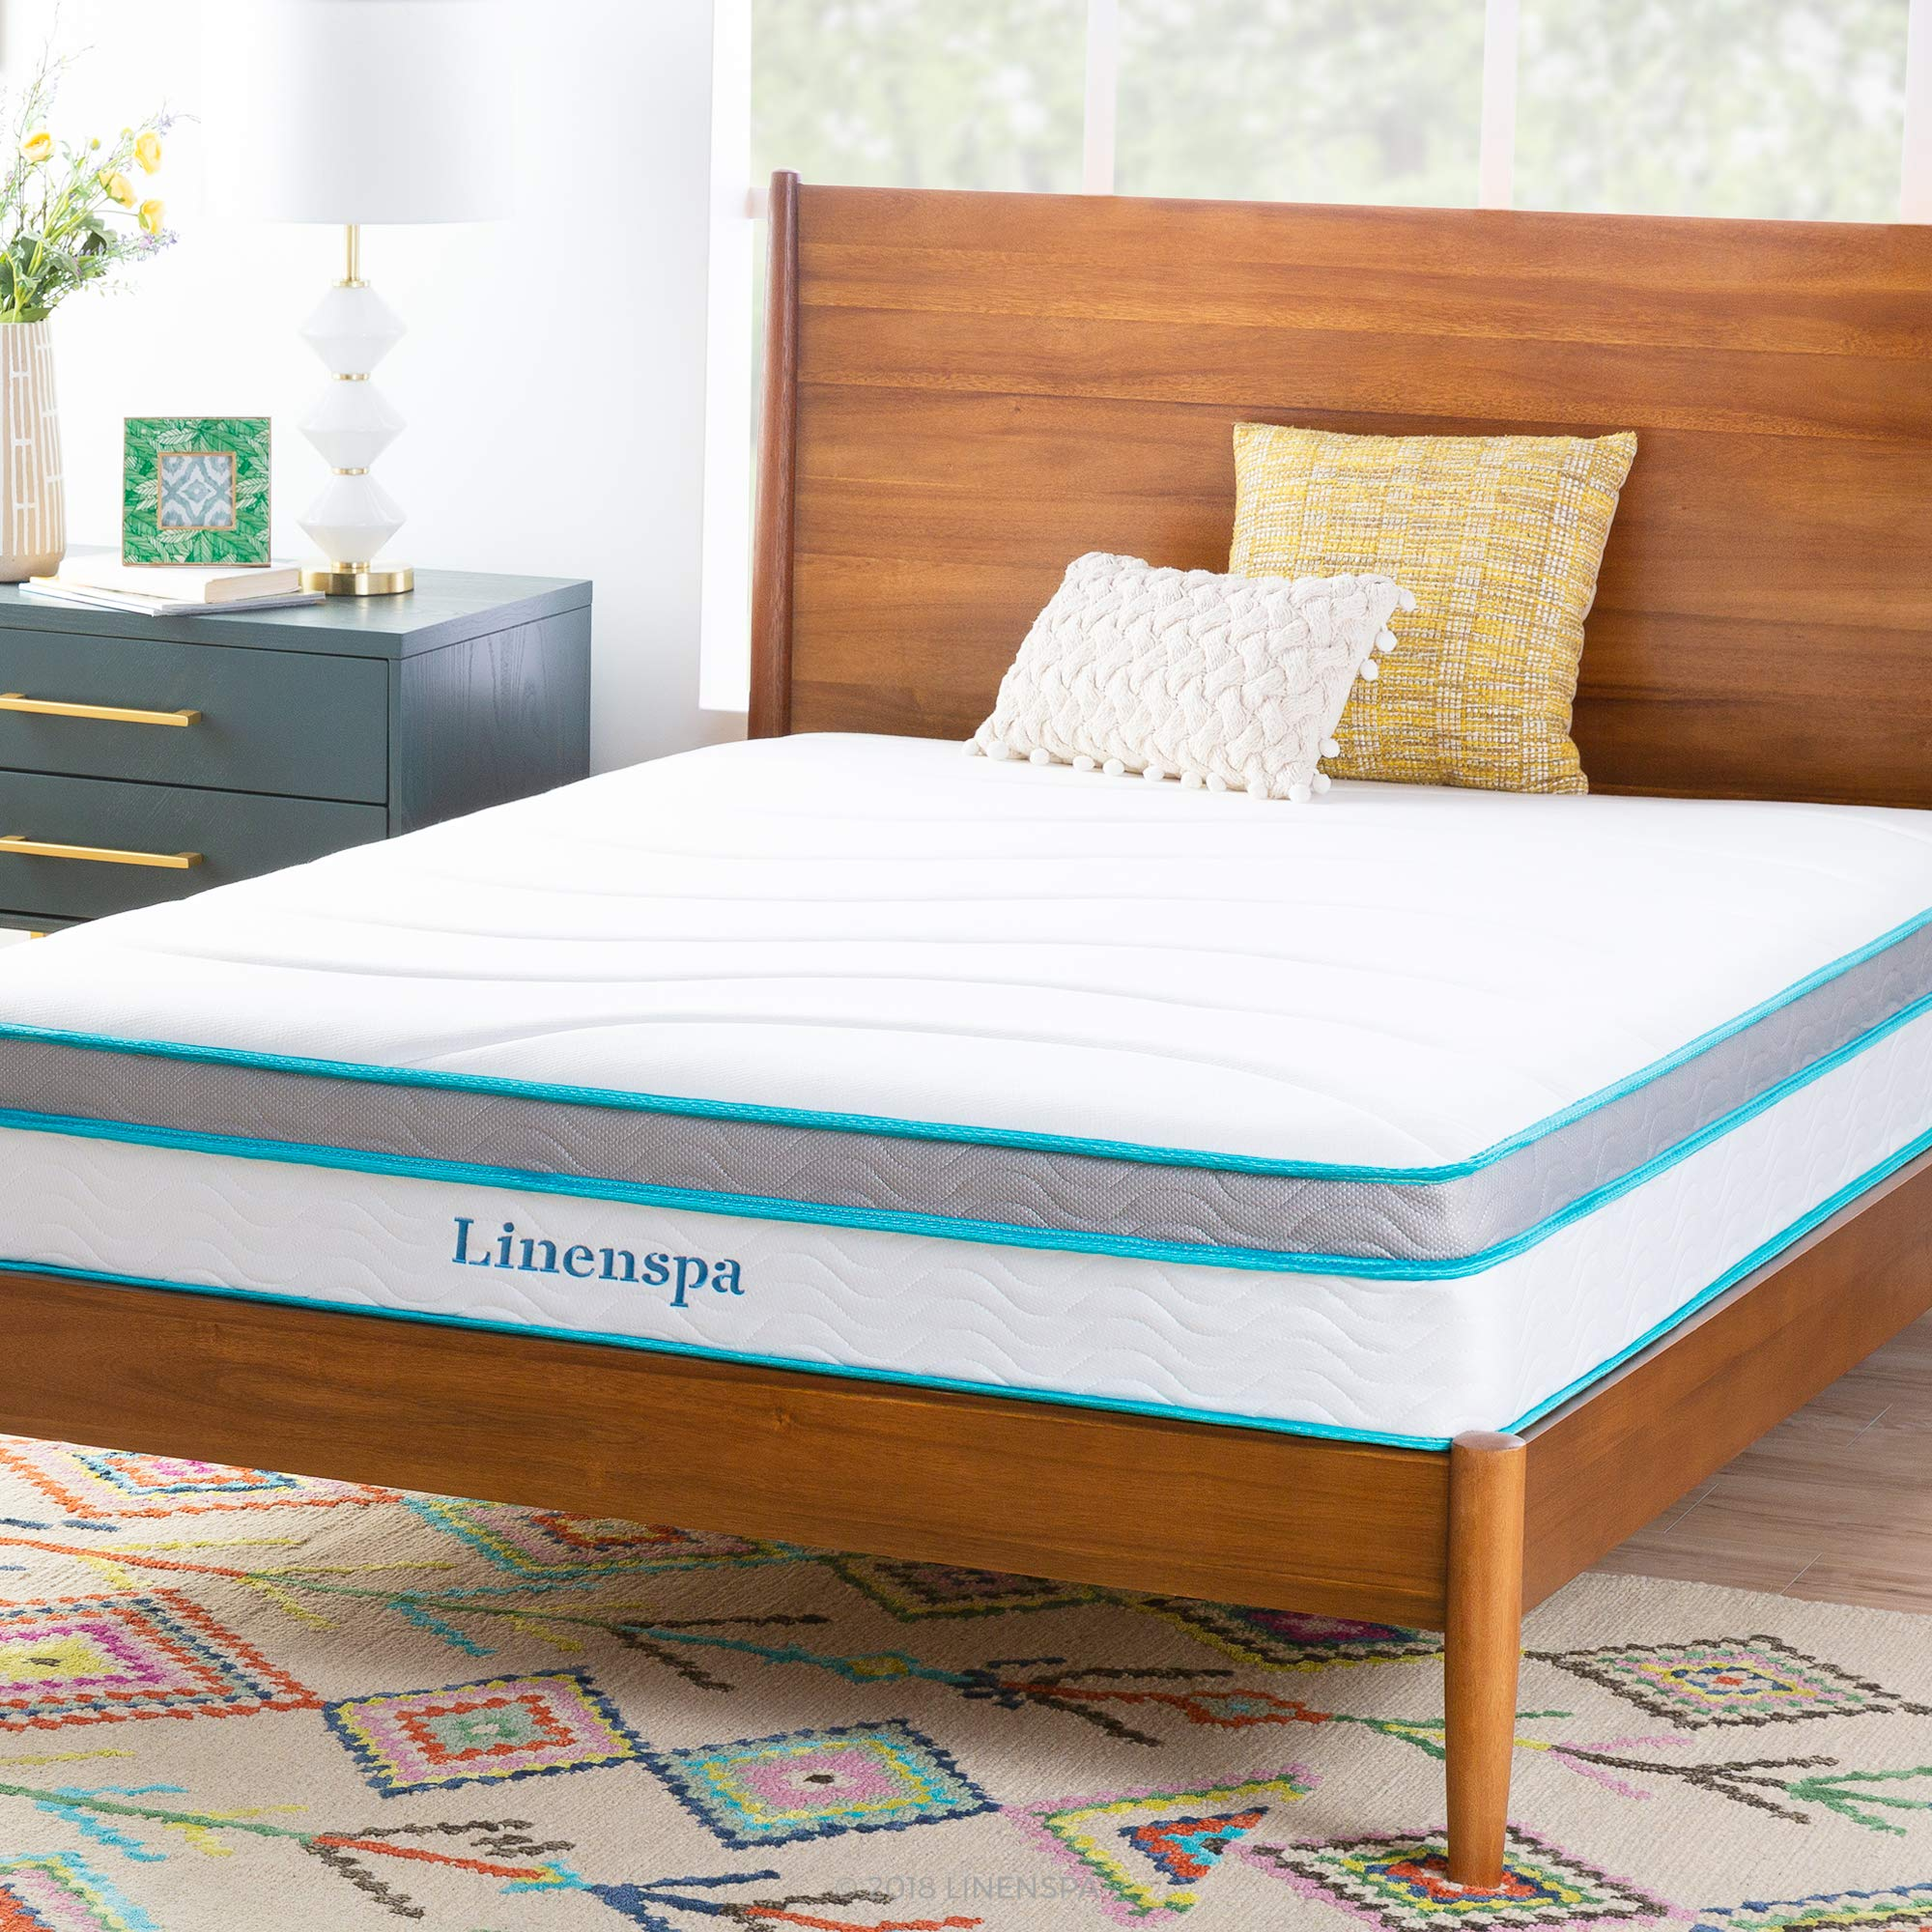 Linenspa LS10FFMFSP Bed Mattress Conventional, Full, 10-Inch by Linenspa (Image #6)